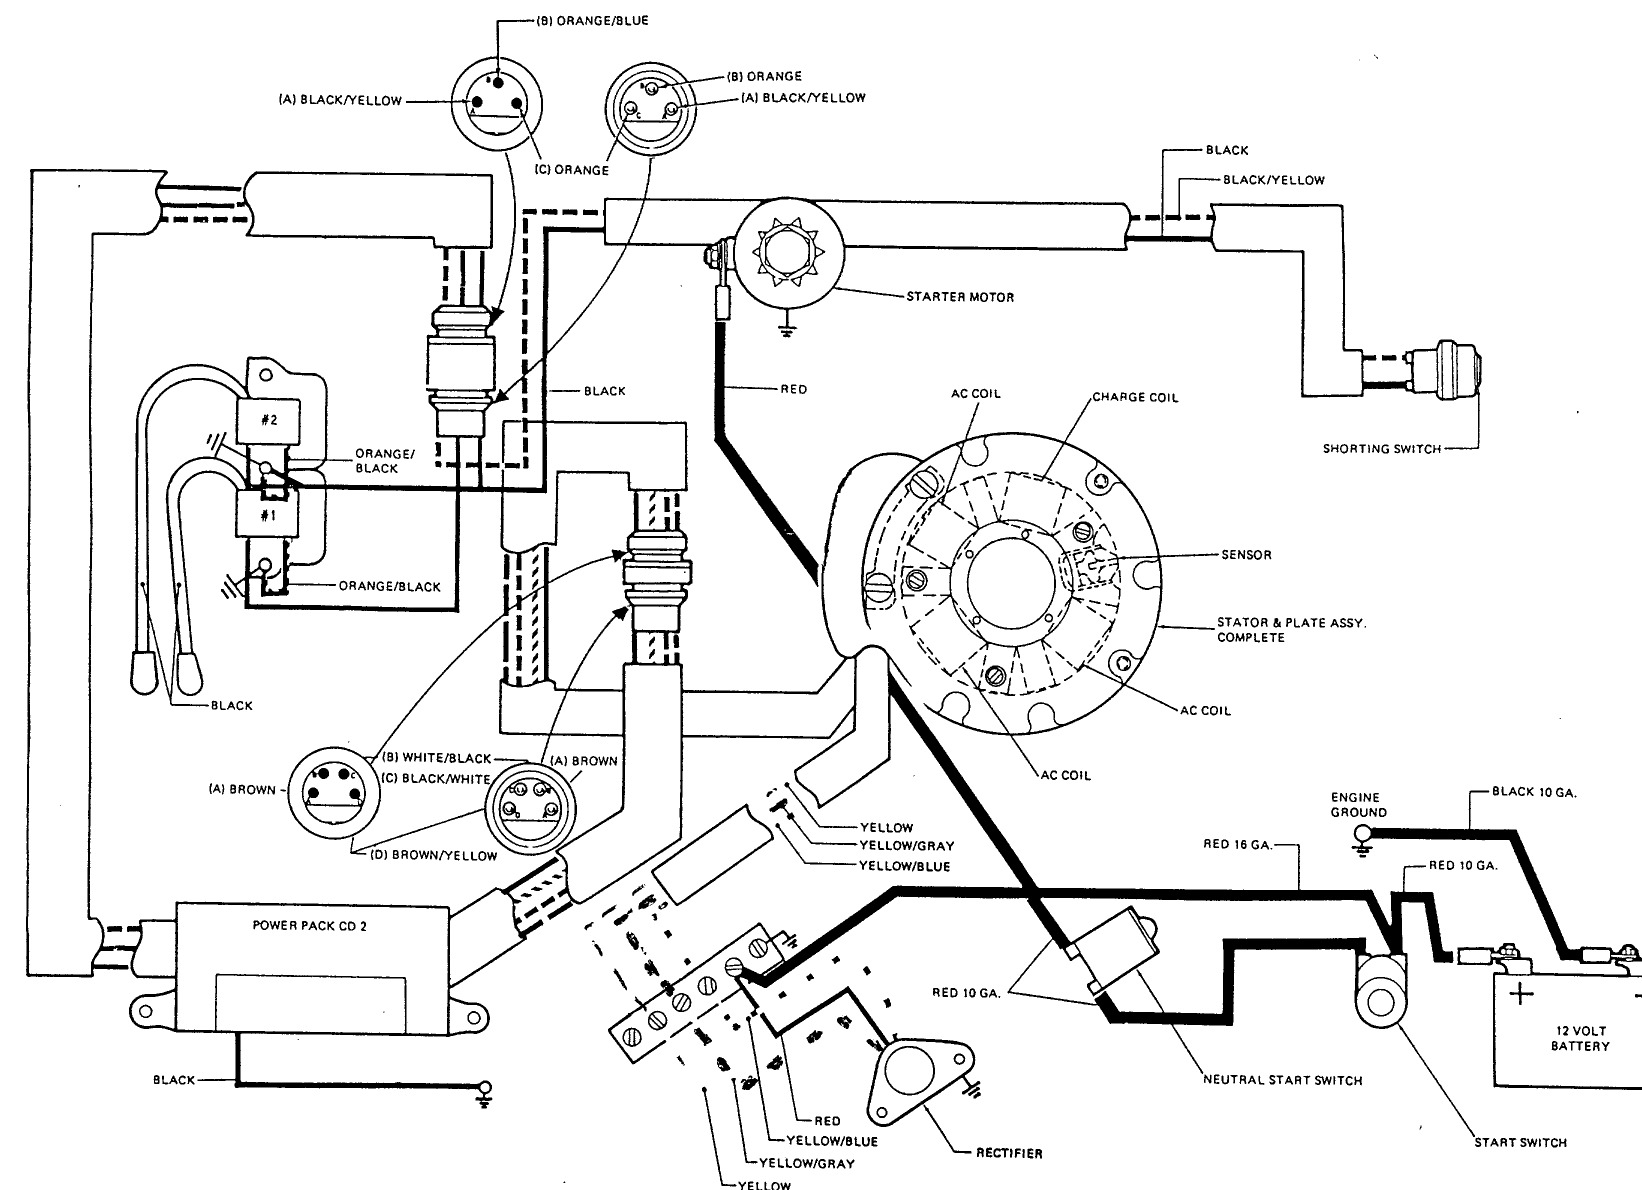 electrical diagram electric maintaining johnson 9 9 troubleshooting 1992 johnson 40 hp outboard wiring diagram at soozxer.org